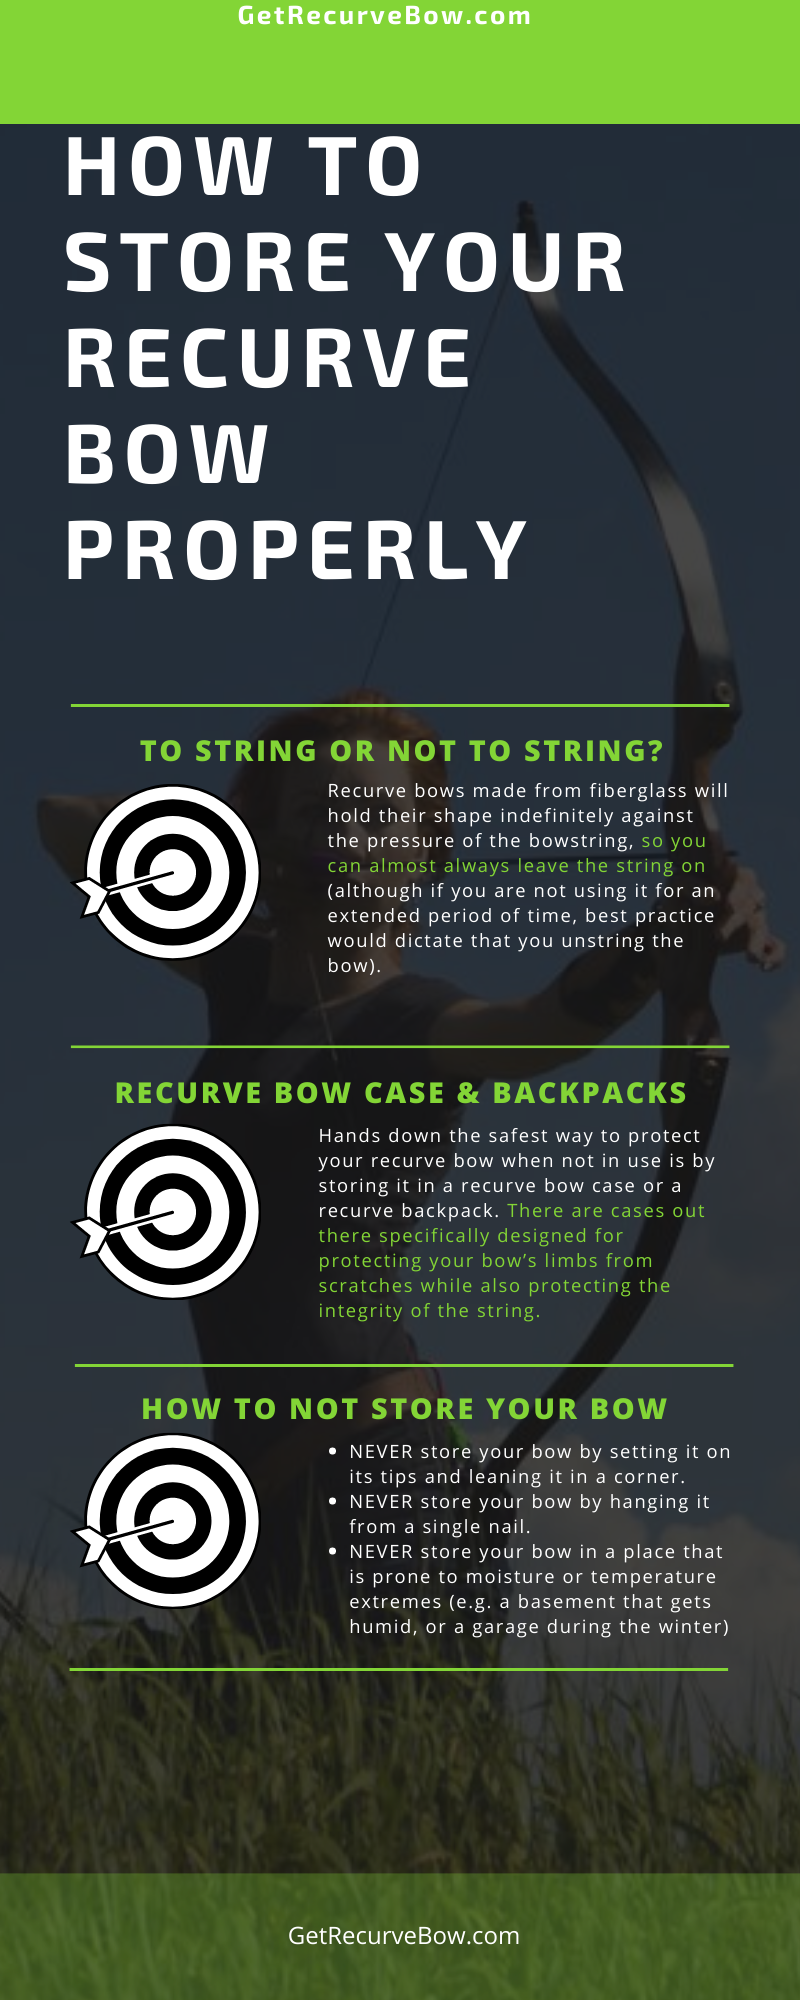 How To Store Your Recurve Bow